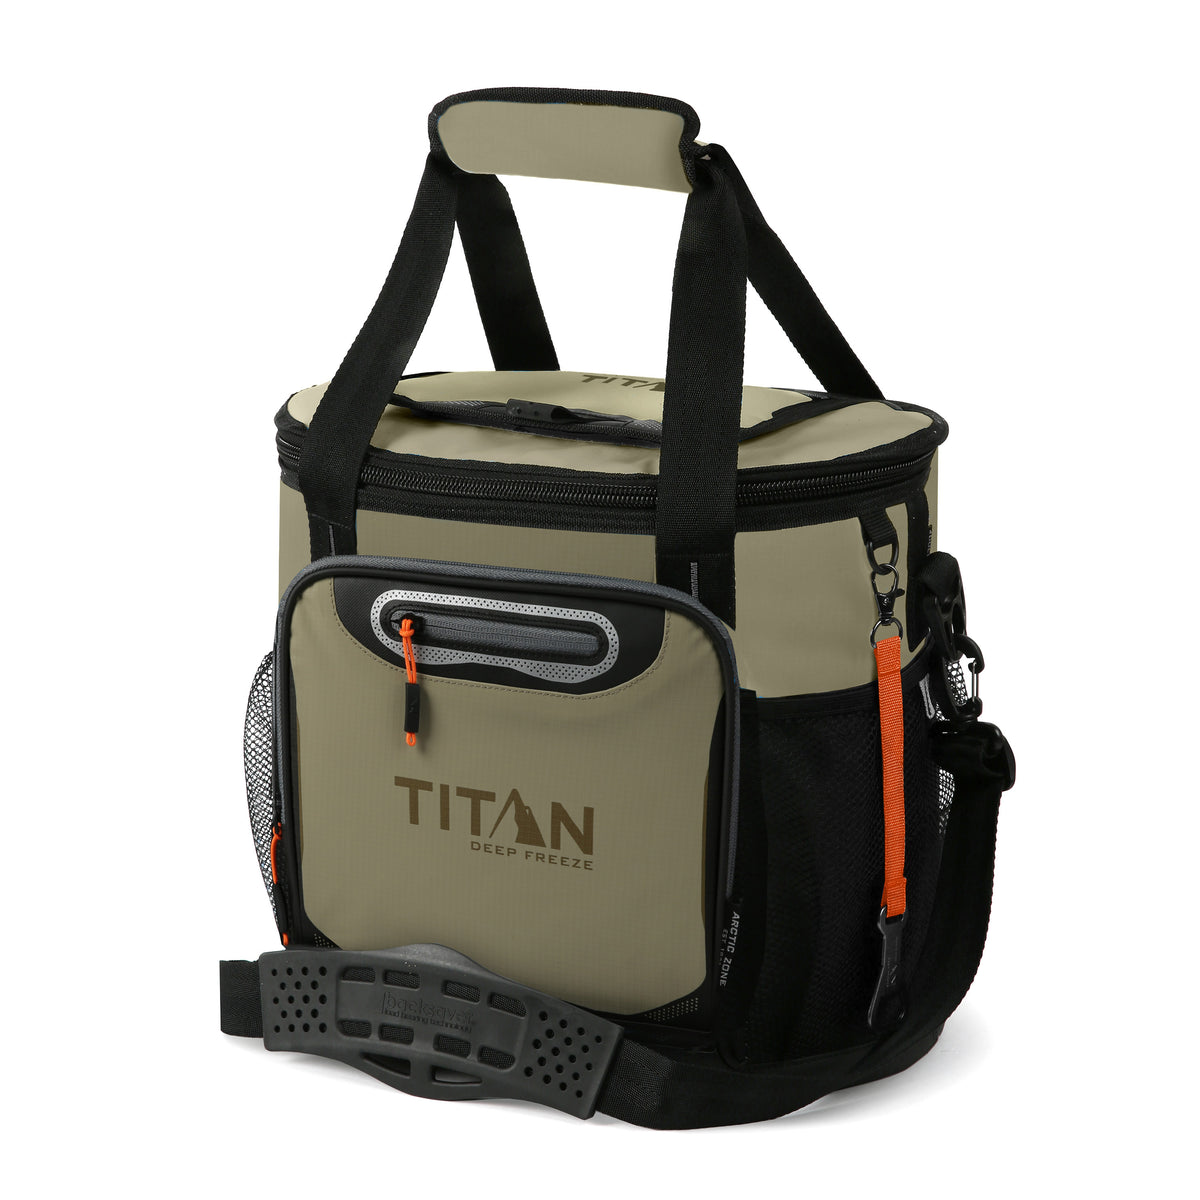 Titan Deep Freeze® 24 Can Bucket Tote - Tan - Front, closed